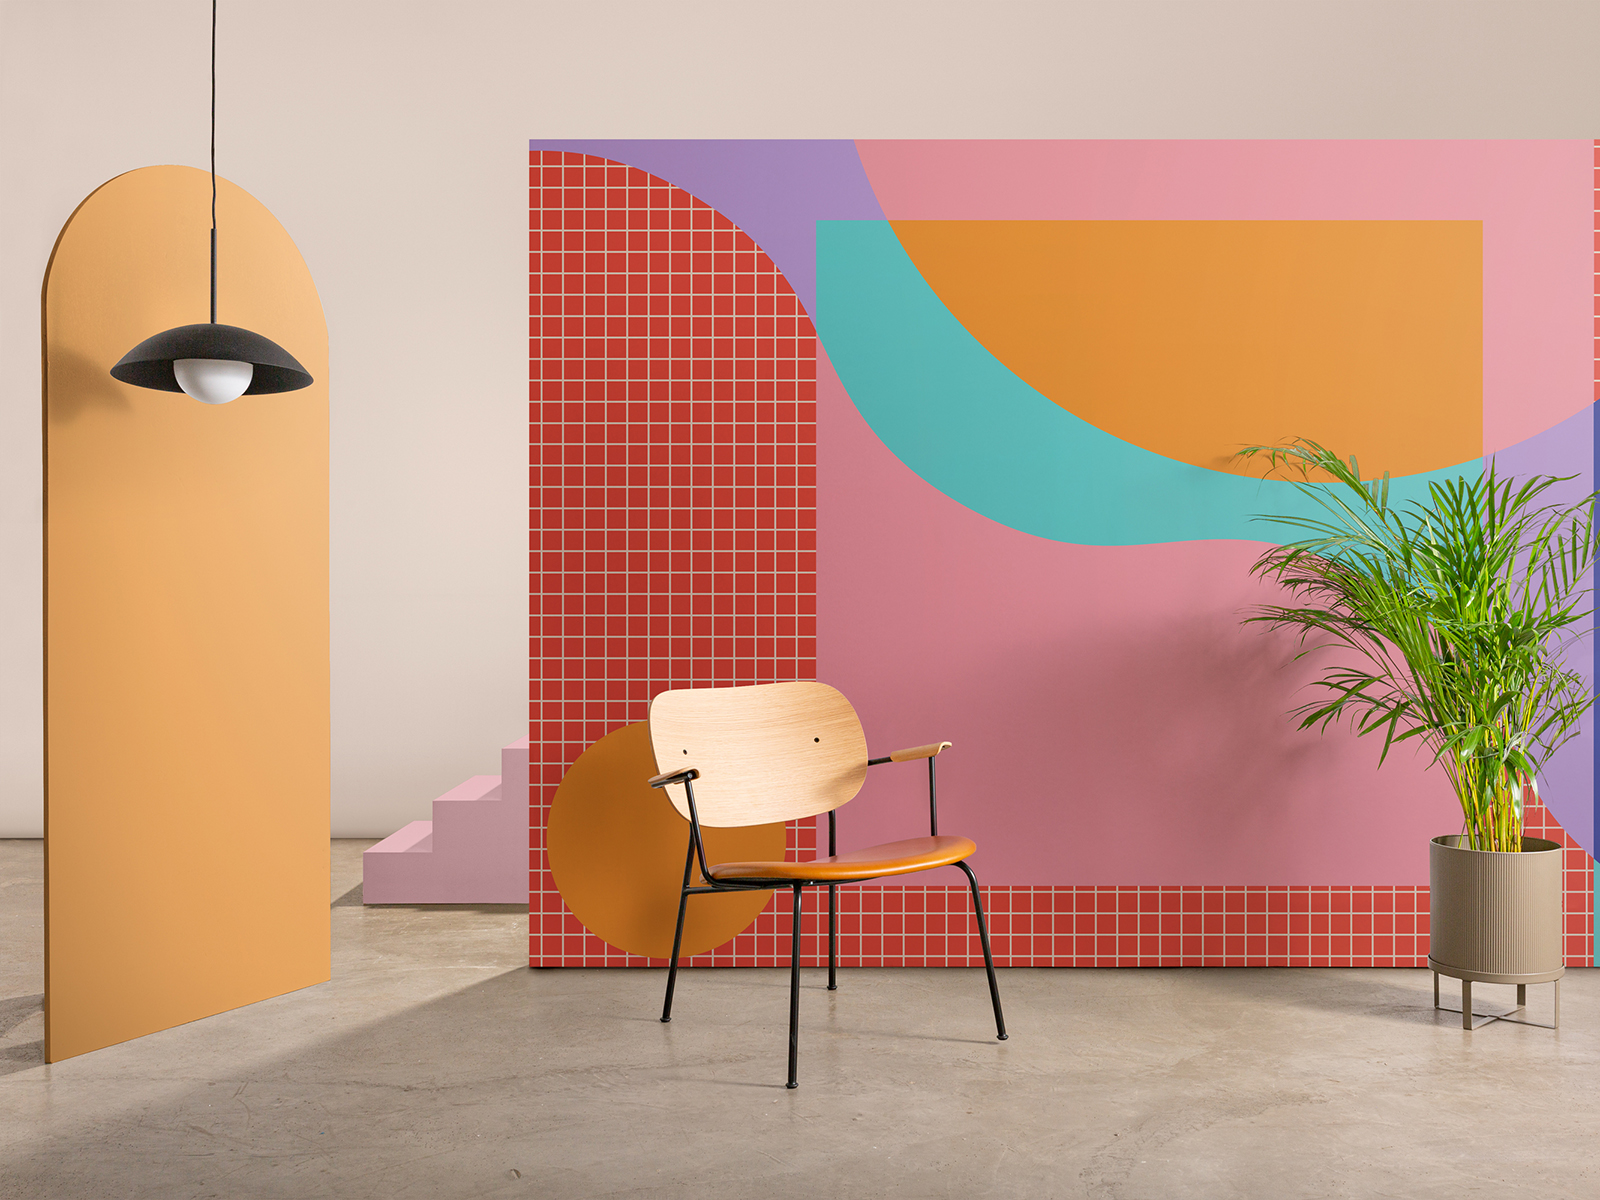 A geometric wallpaper design on a freestanding wall with a armchair and plant